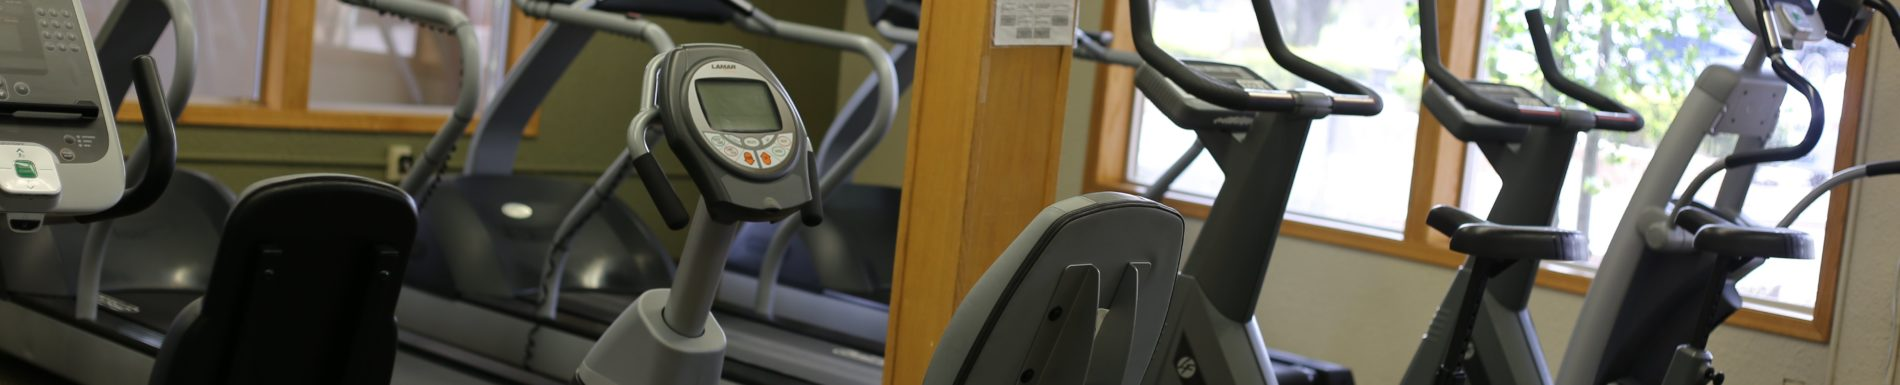 Get a great workout in our Fitness Room.